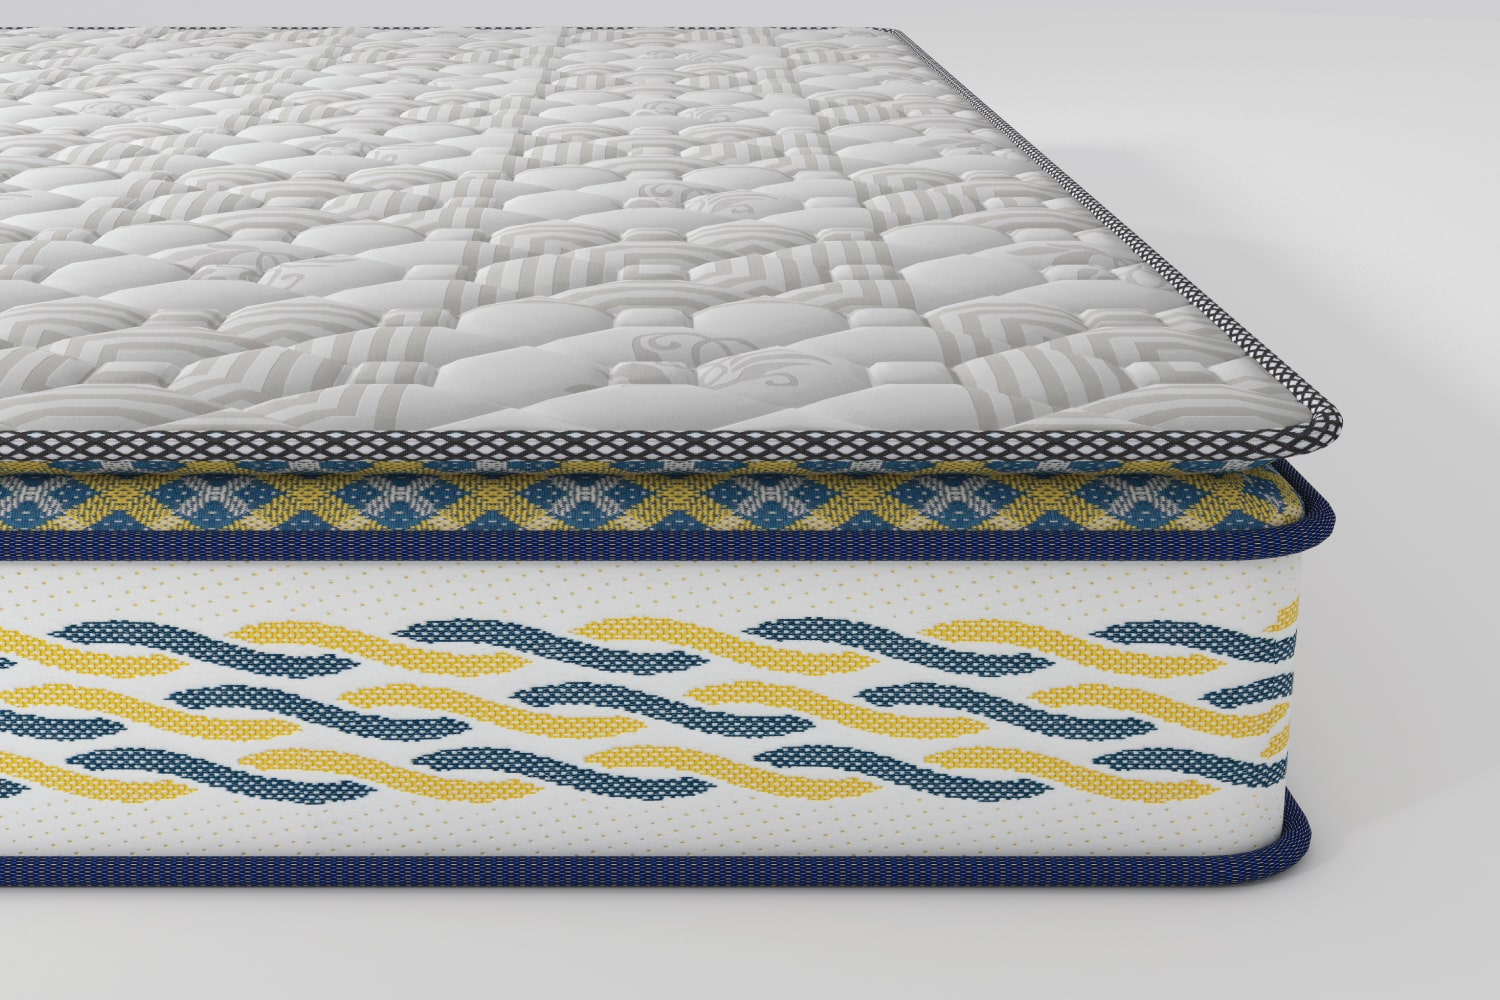 Mattress Market To Witness Significant Growth Of $70 Billion With An Impressive CAGR Of 7.2% By 2031